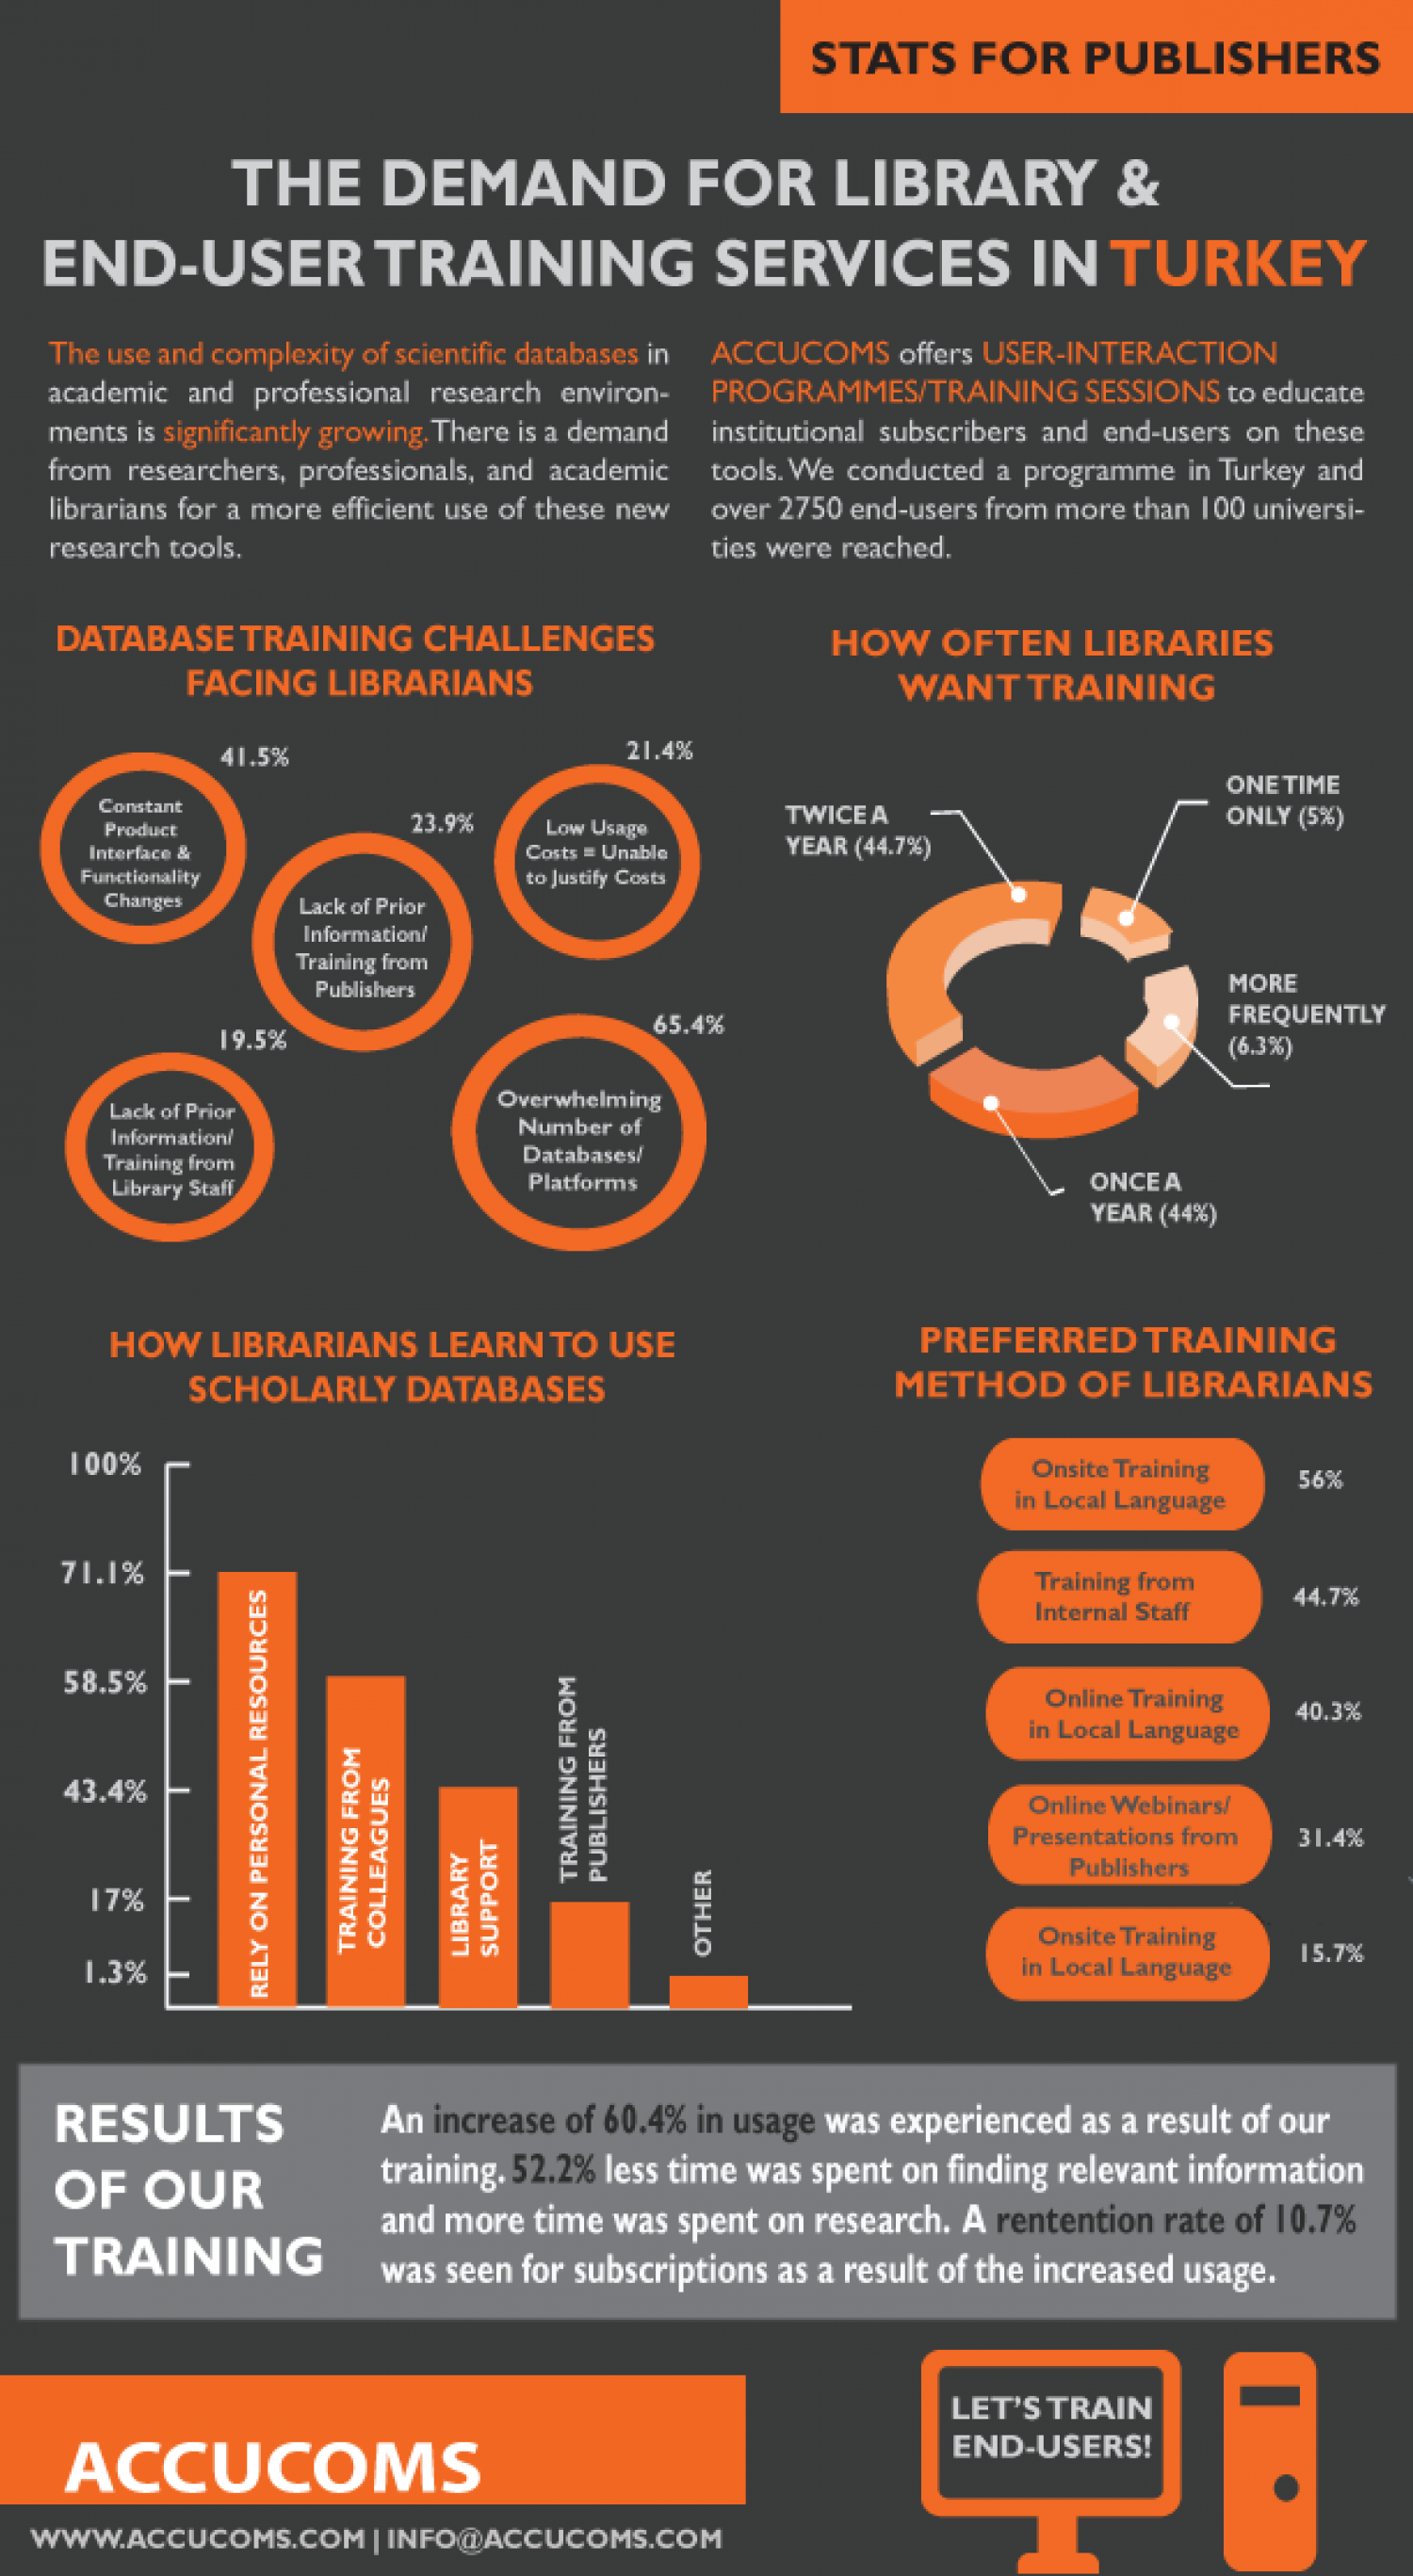 The Demand for Library & End-User Training Services in Turkey Infographic